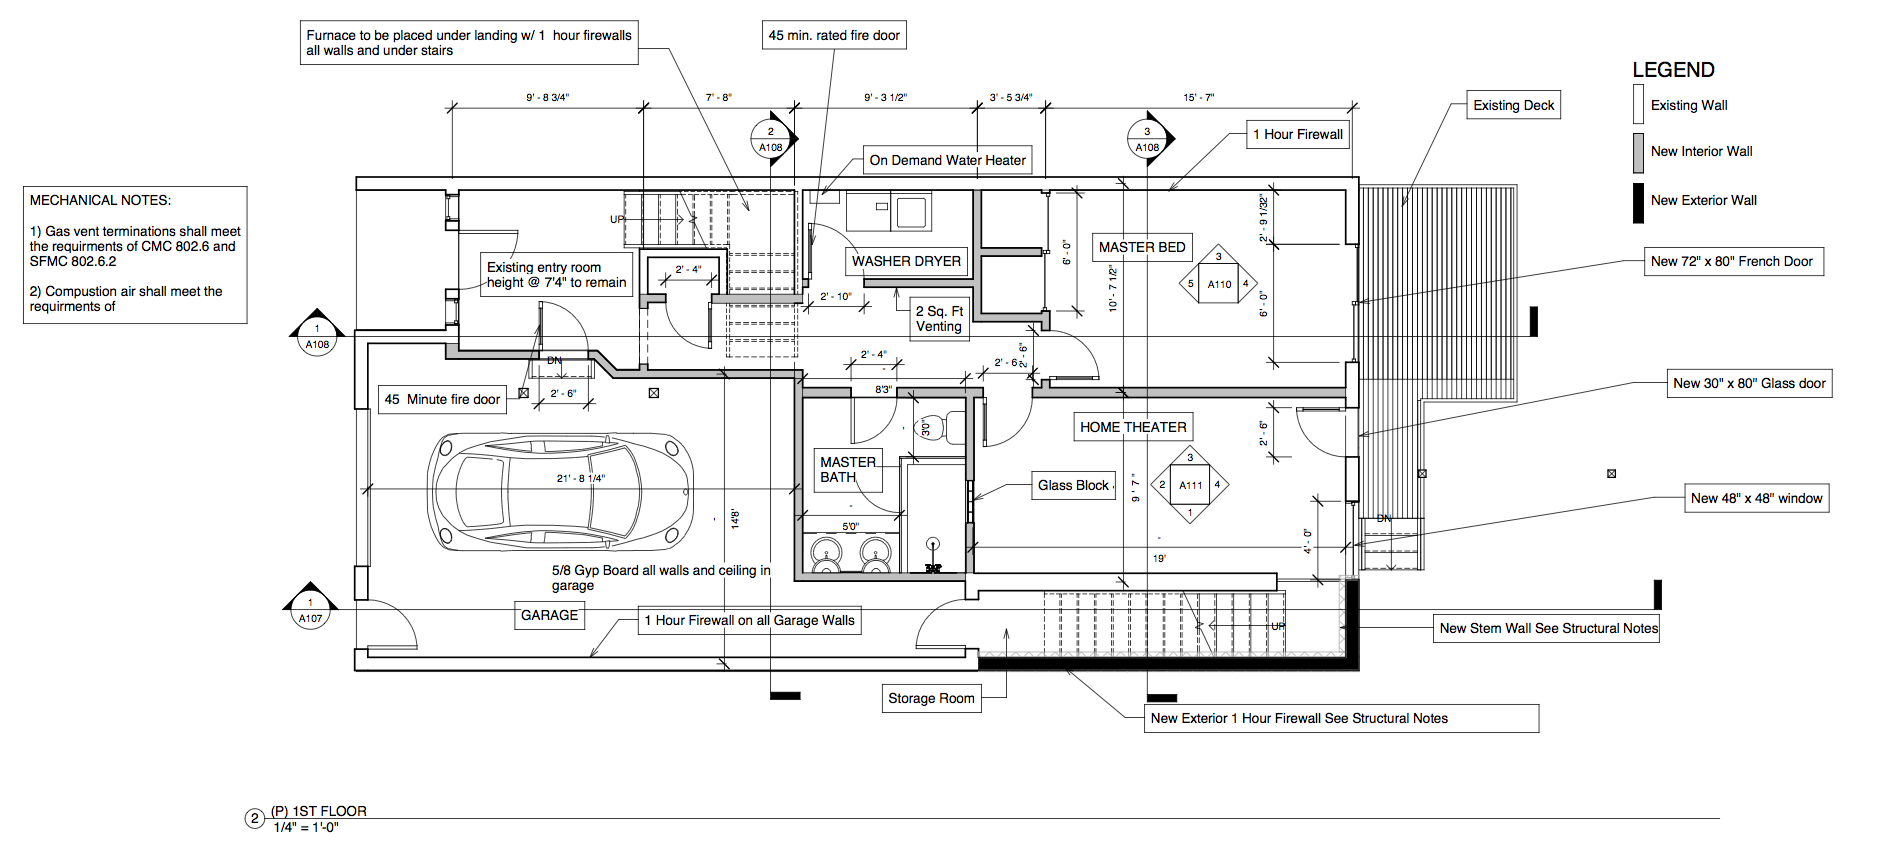 Construction document format with dimensions and building information